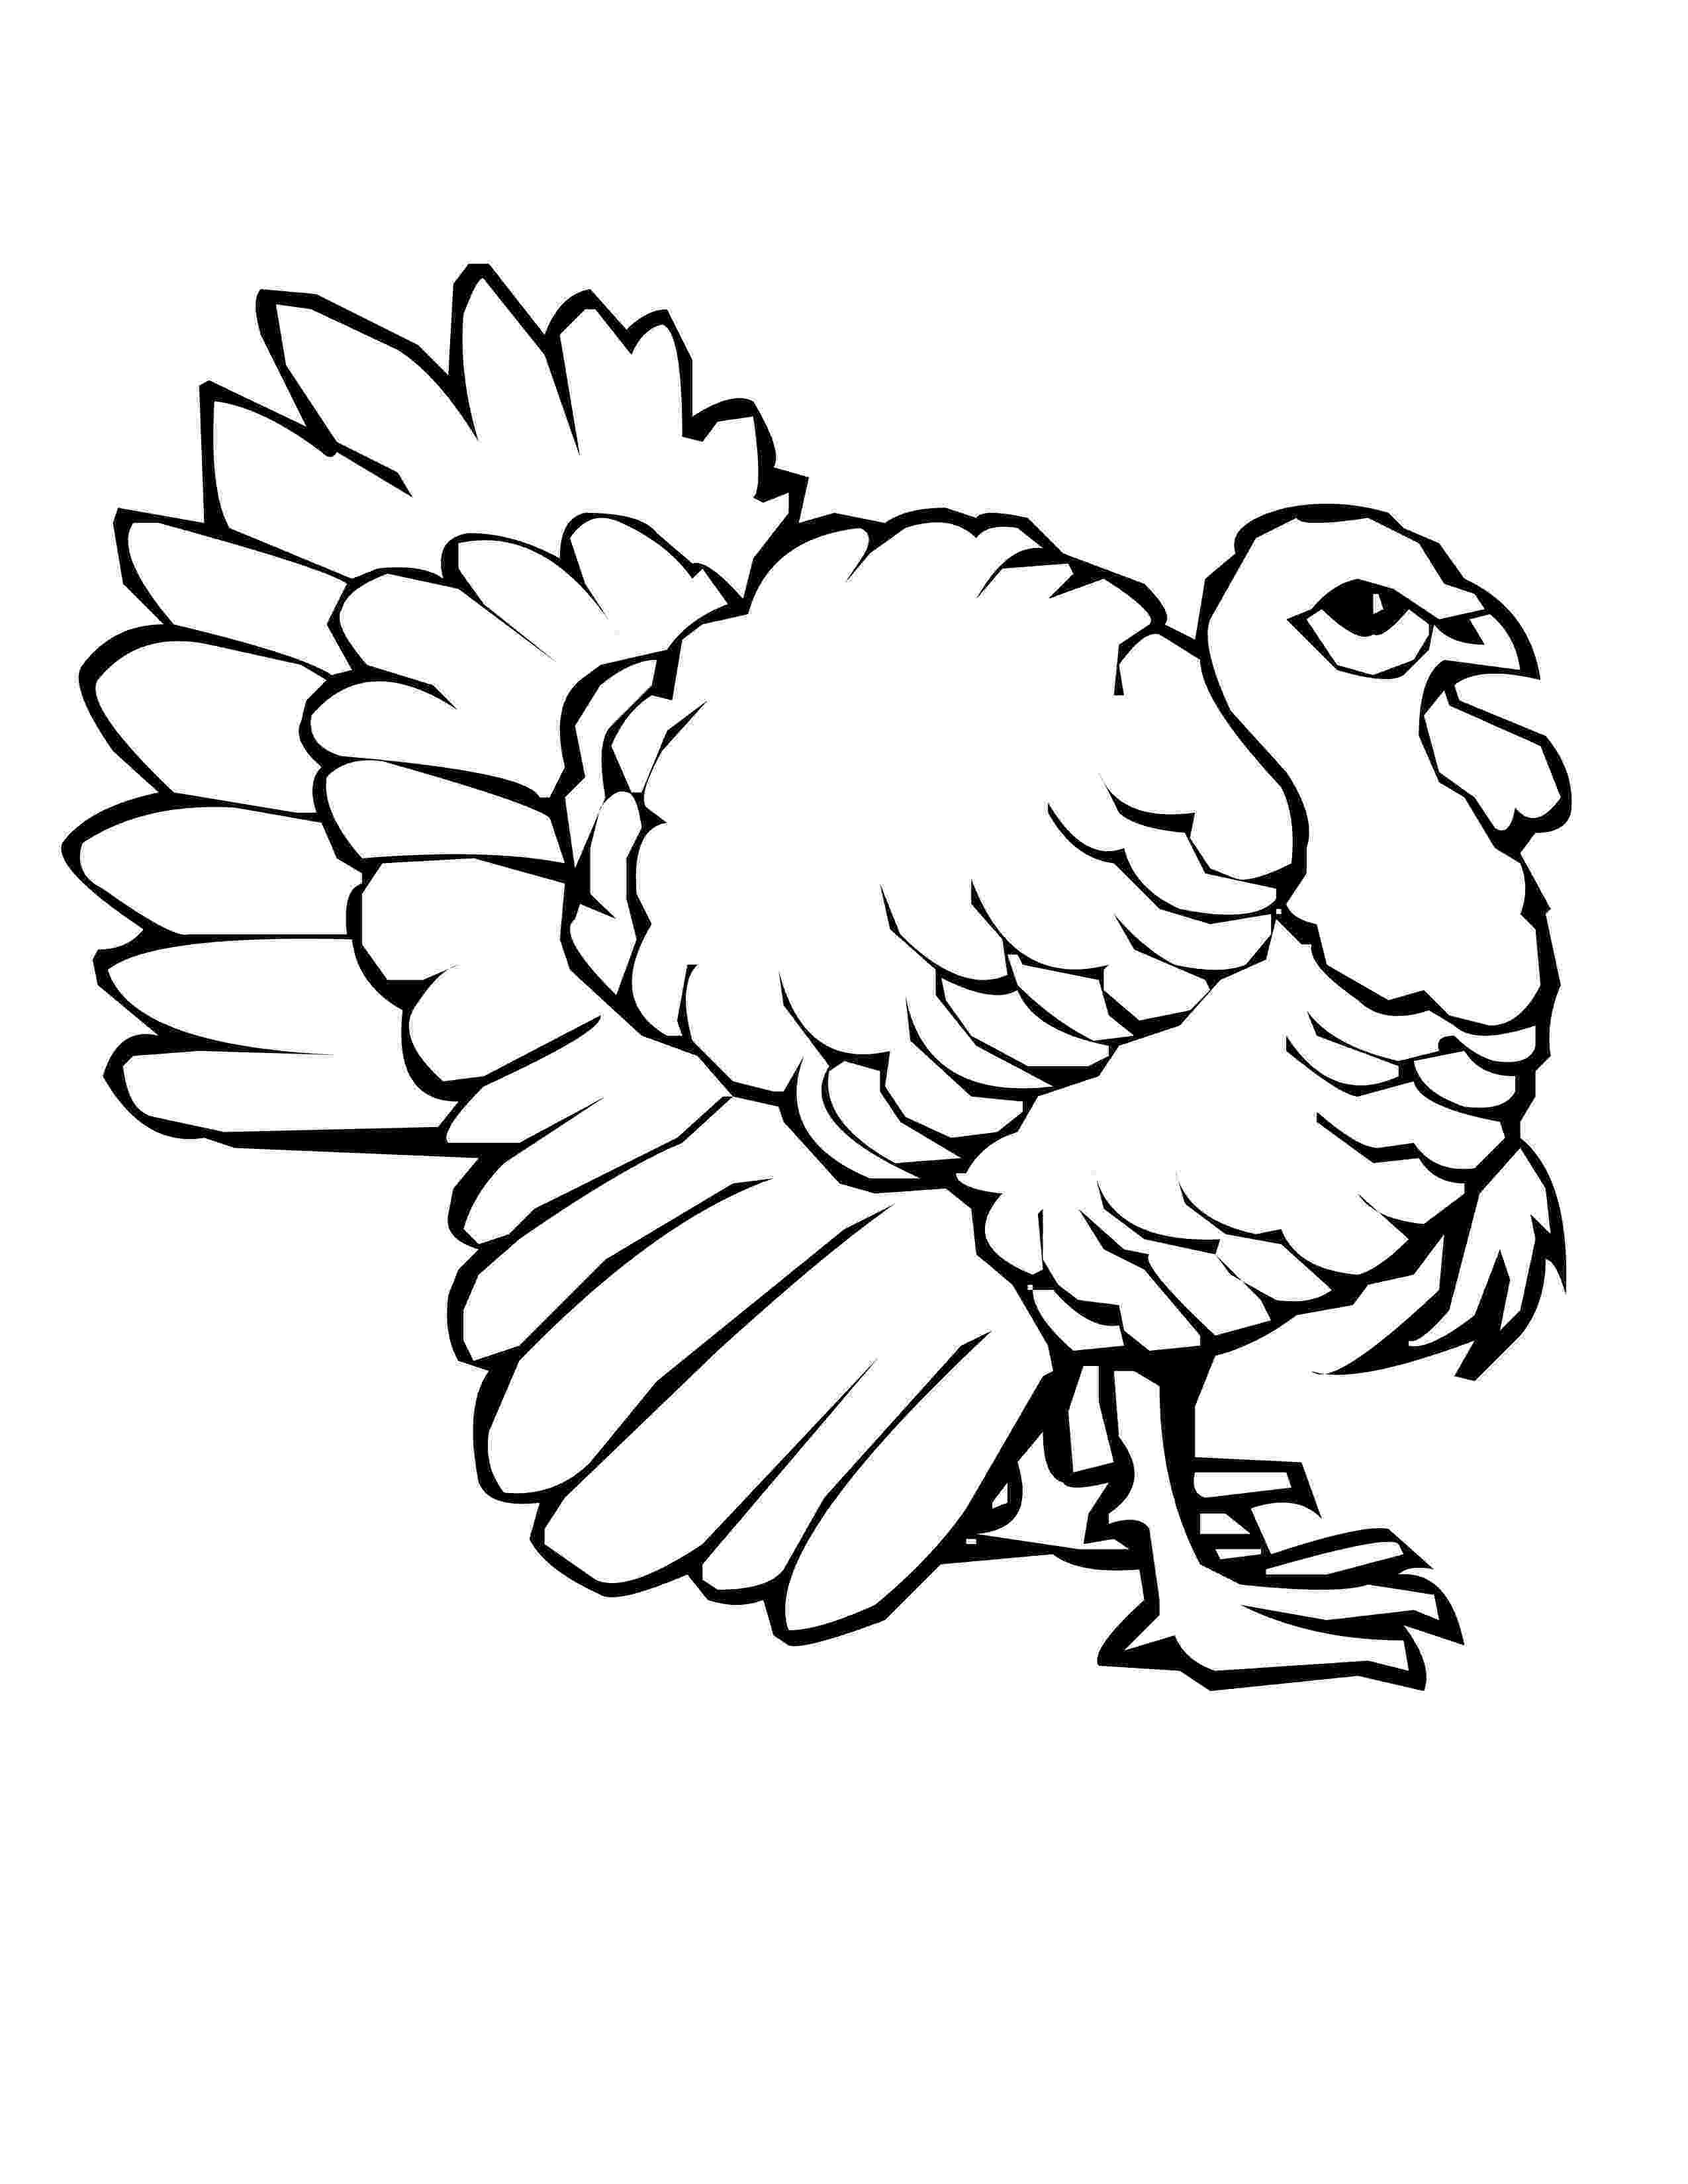 coloring turkey free printable turkey coloring pages for kids turkey coloring